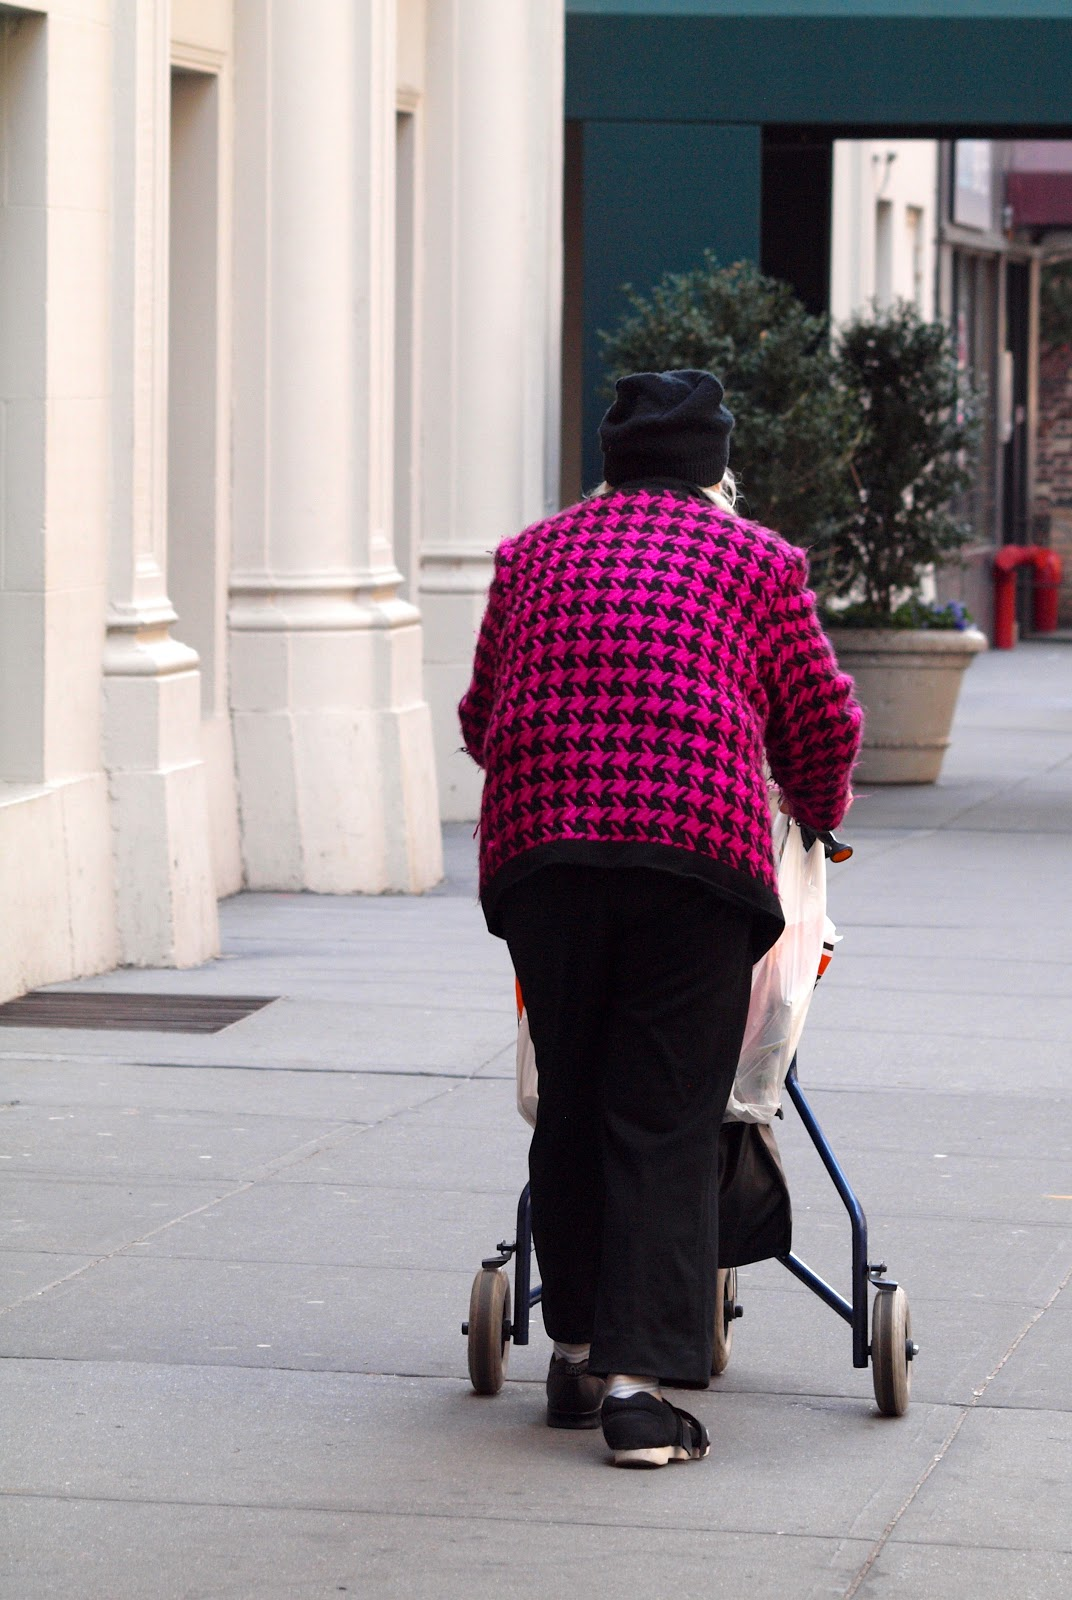 Out and About NYC, older woman walking with stroller